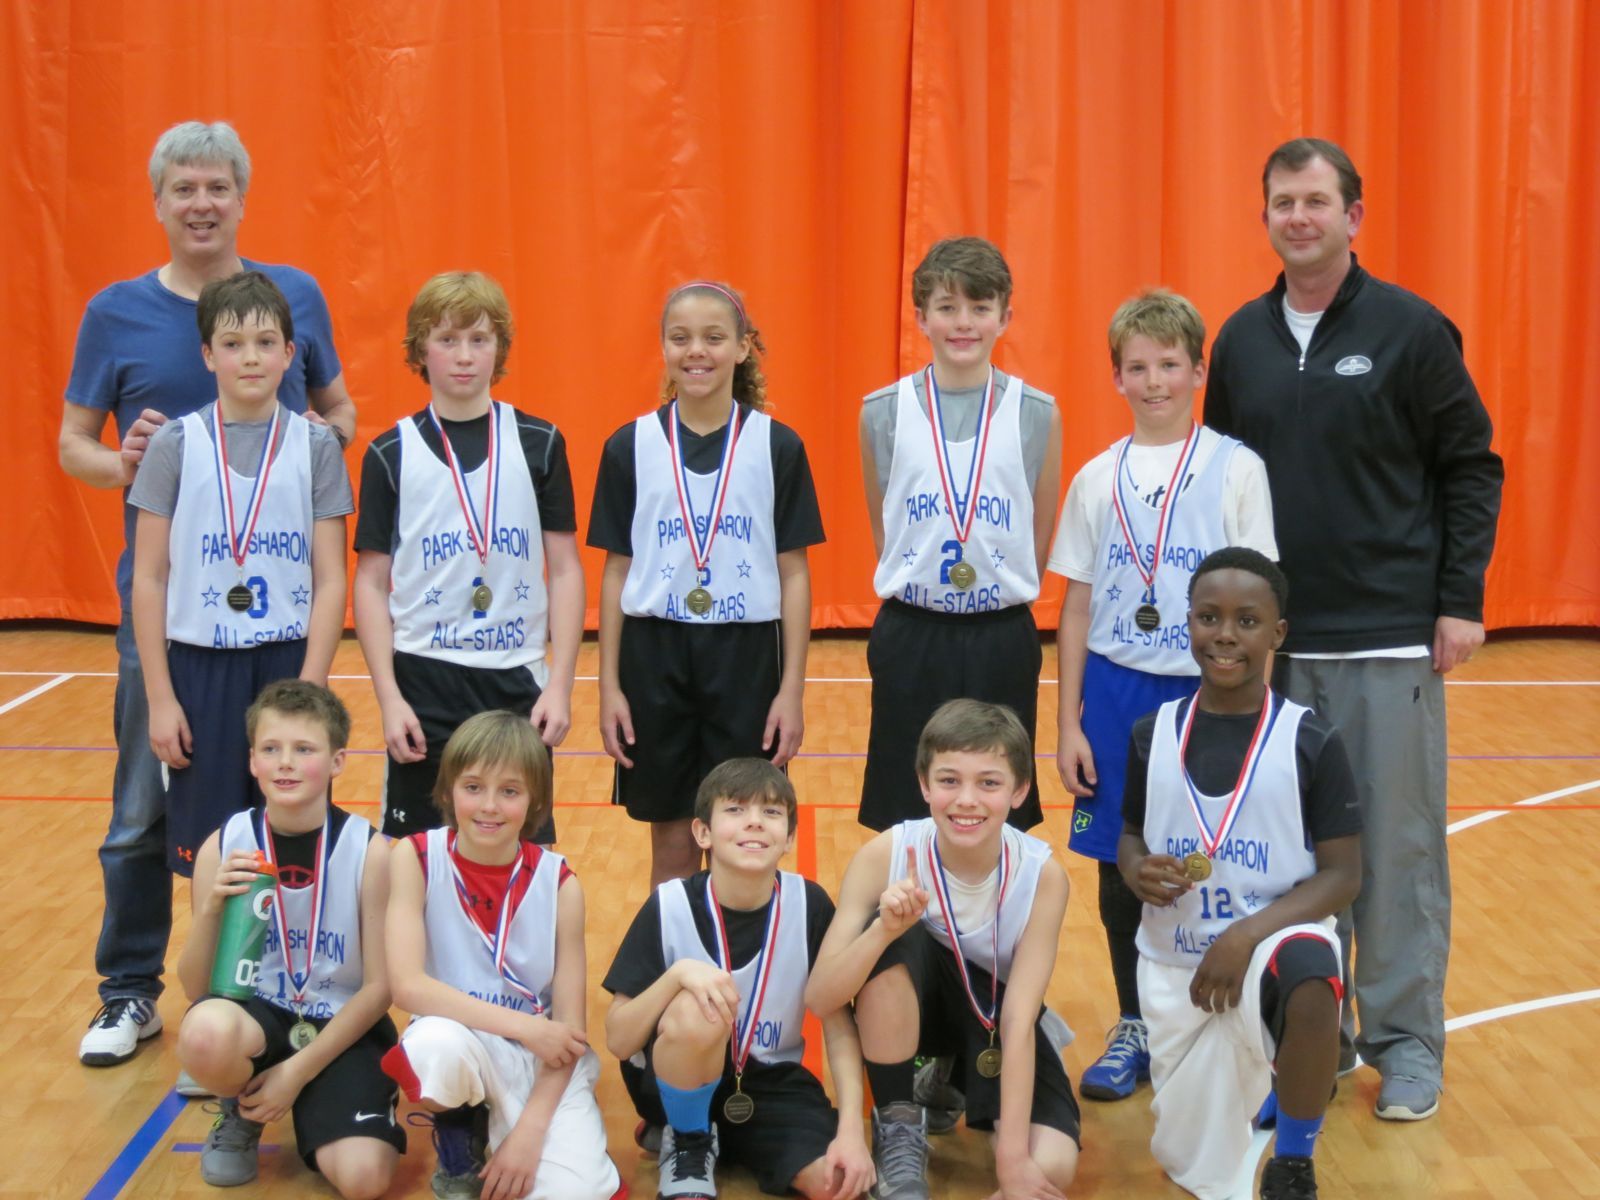 2013 PSAA 10U All Star Champs